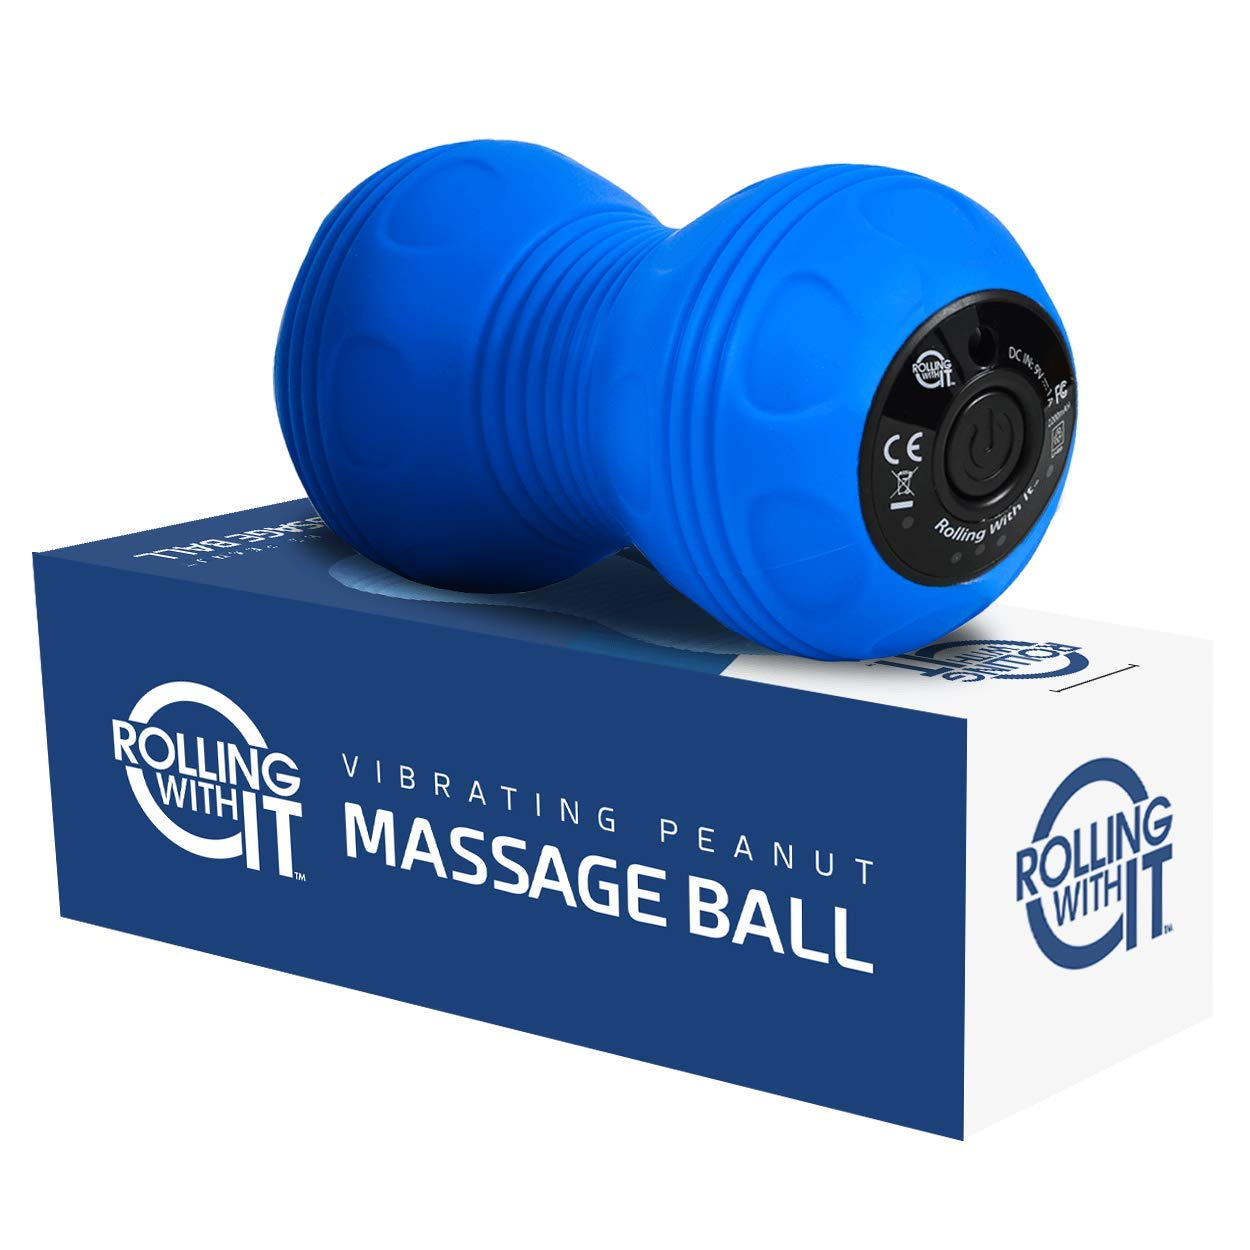 Professional Vibrating Peanut Massage Ball - Deep Tissue Trigger Point Therapy, Myofascial Release - Handheld, Cordless - 4 Intensity Levels - Dual Lacrosse Ball Vibration Massager - Blue by Rolling With It